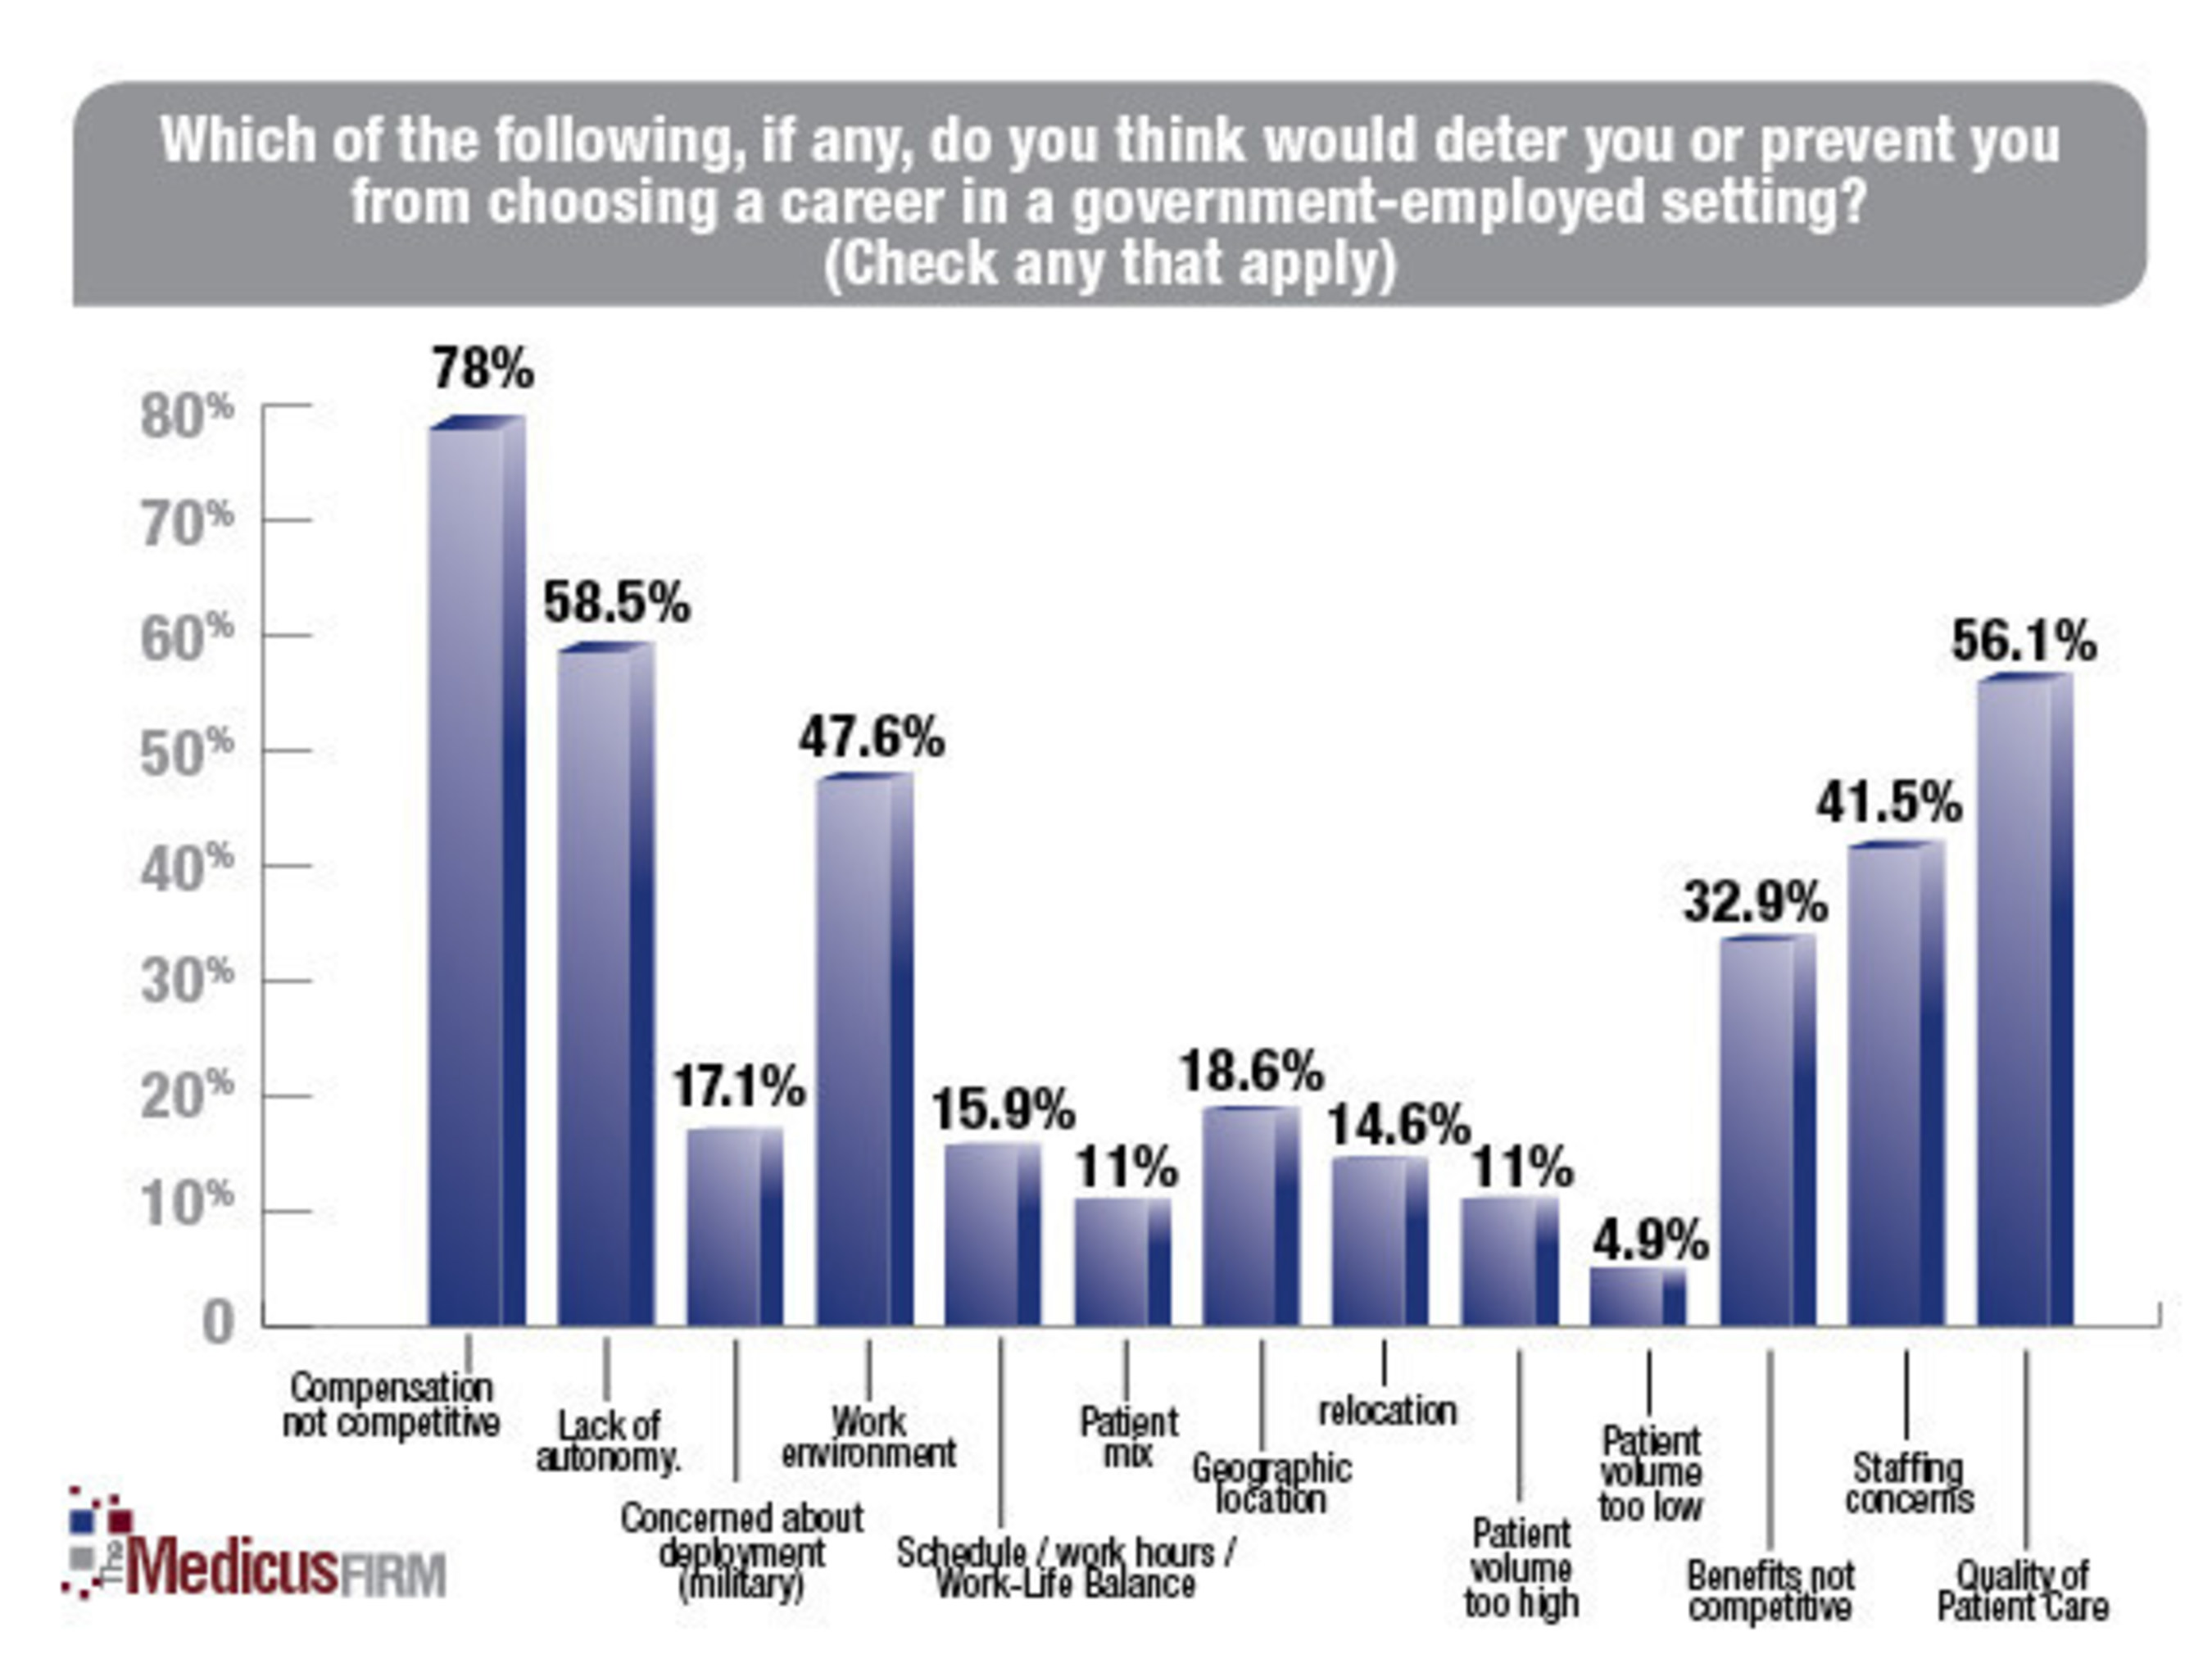 Physicians and Government Practice Survey: Respondents could choose multiple answers - totals exceed 100%